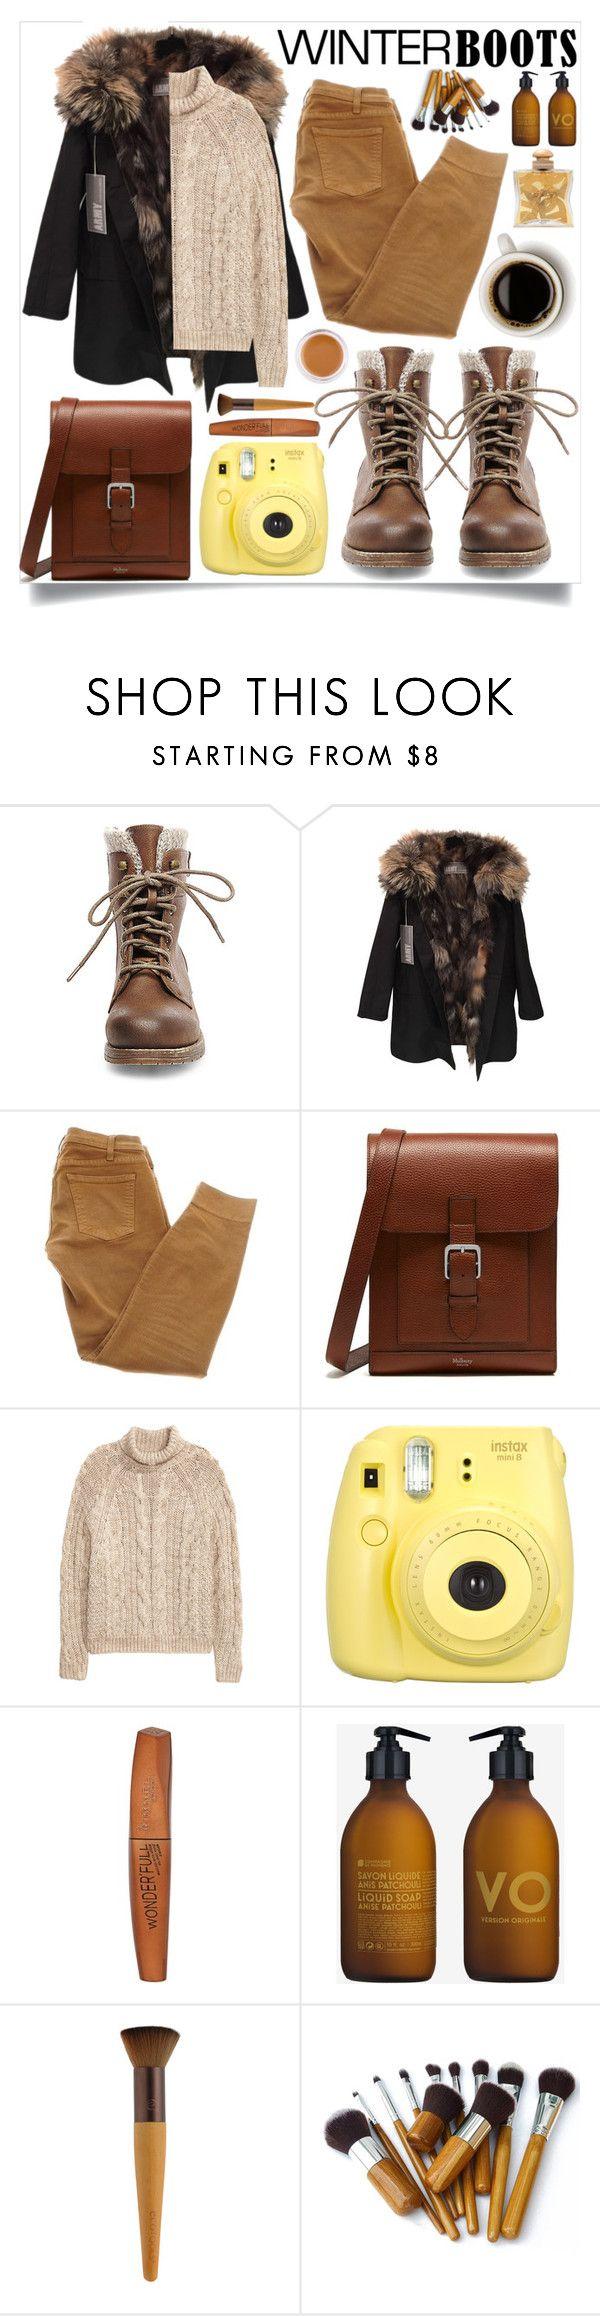 """""""So Cozy: Winter Boots"""" by lenochca ❤ liked on Polyvore featuring Steve Madden, Yves Salomon, Current/Elliott, Mulberry, H&M, Fujifilm, Rimmel, Hermès, La Compagnie de Provence and Anastasia Beverly Hills"""